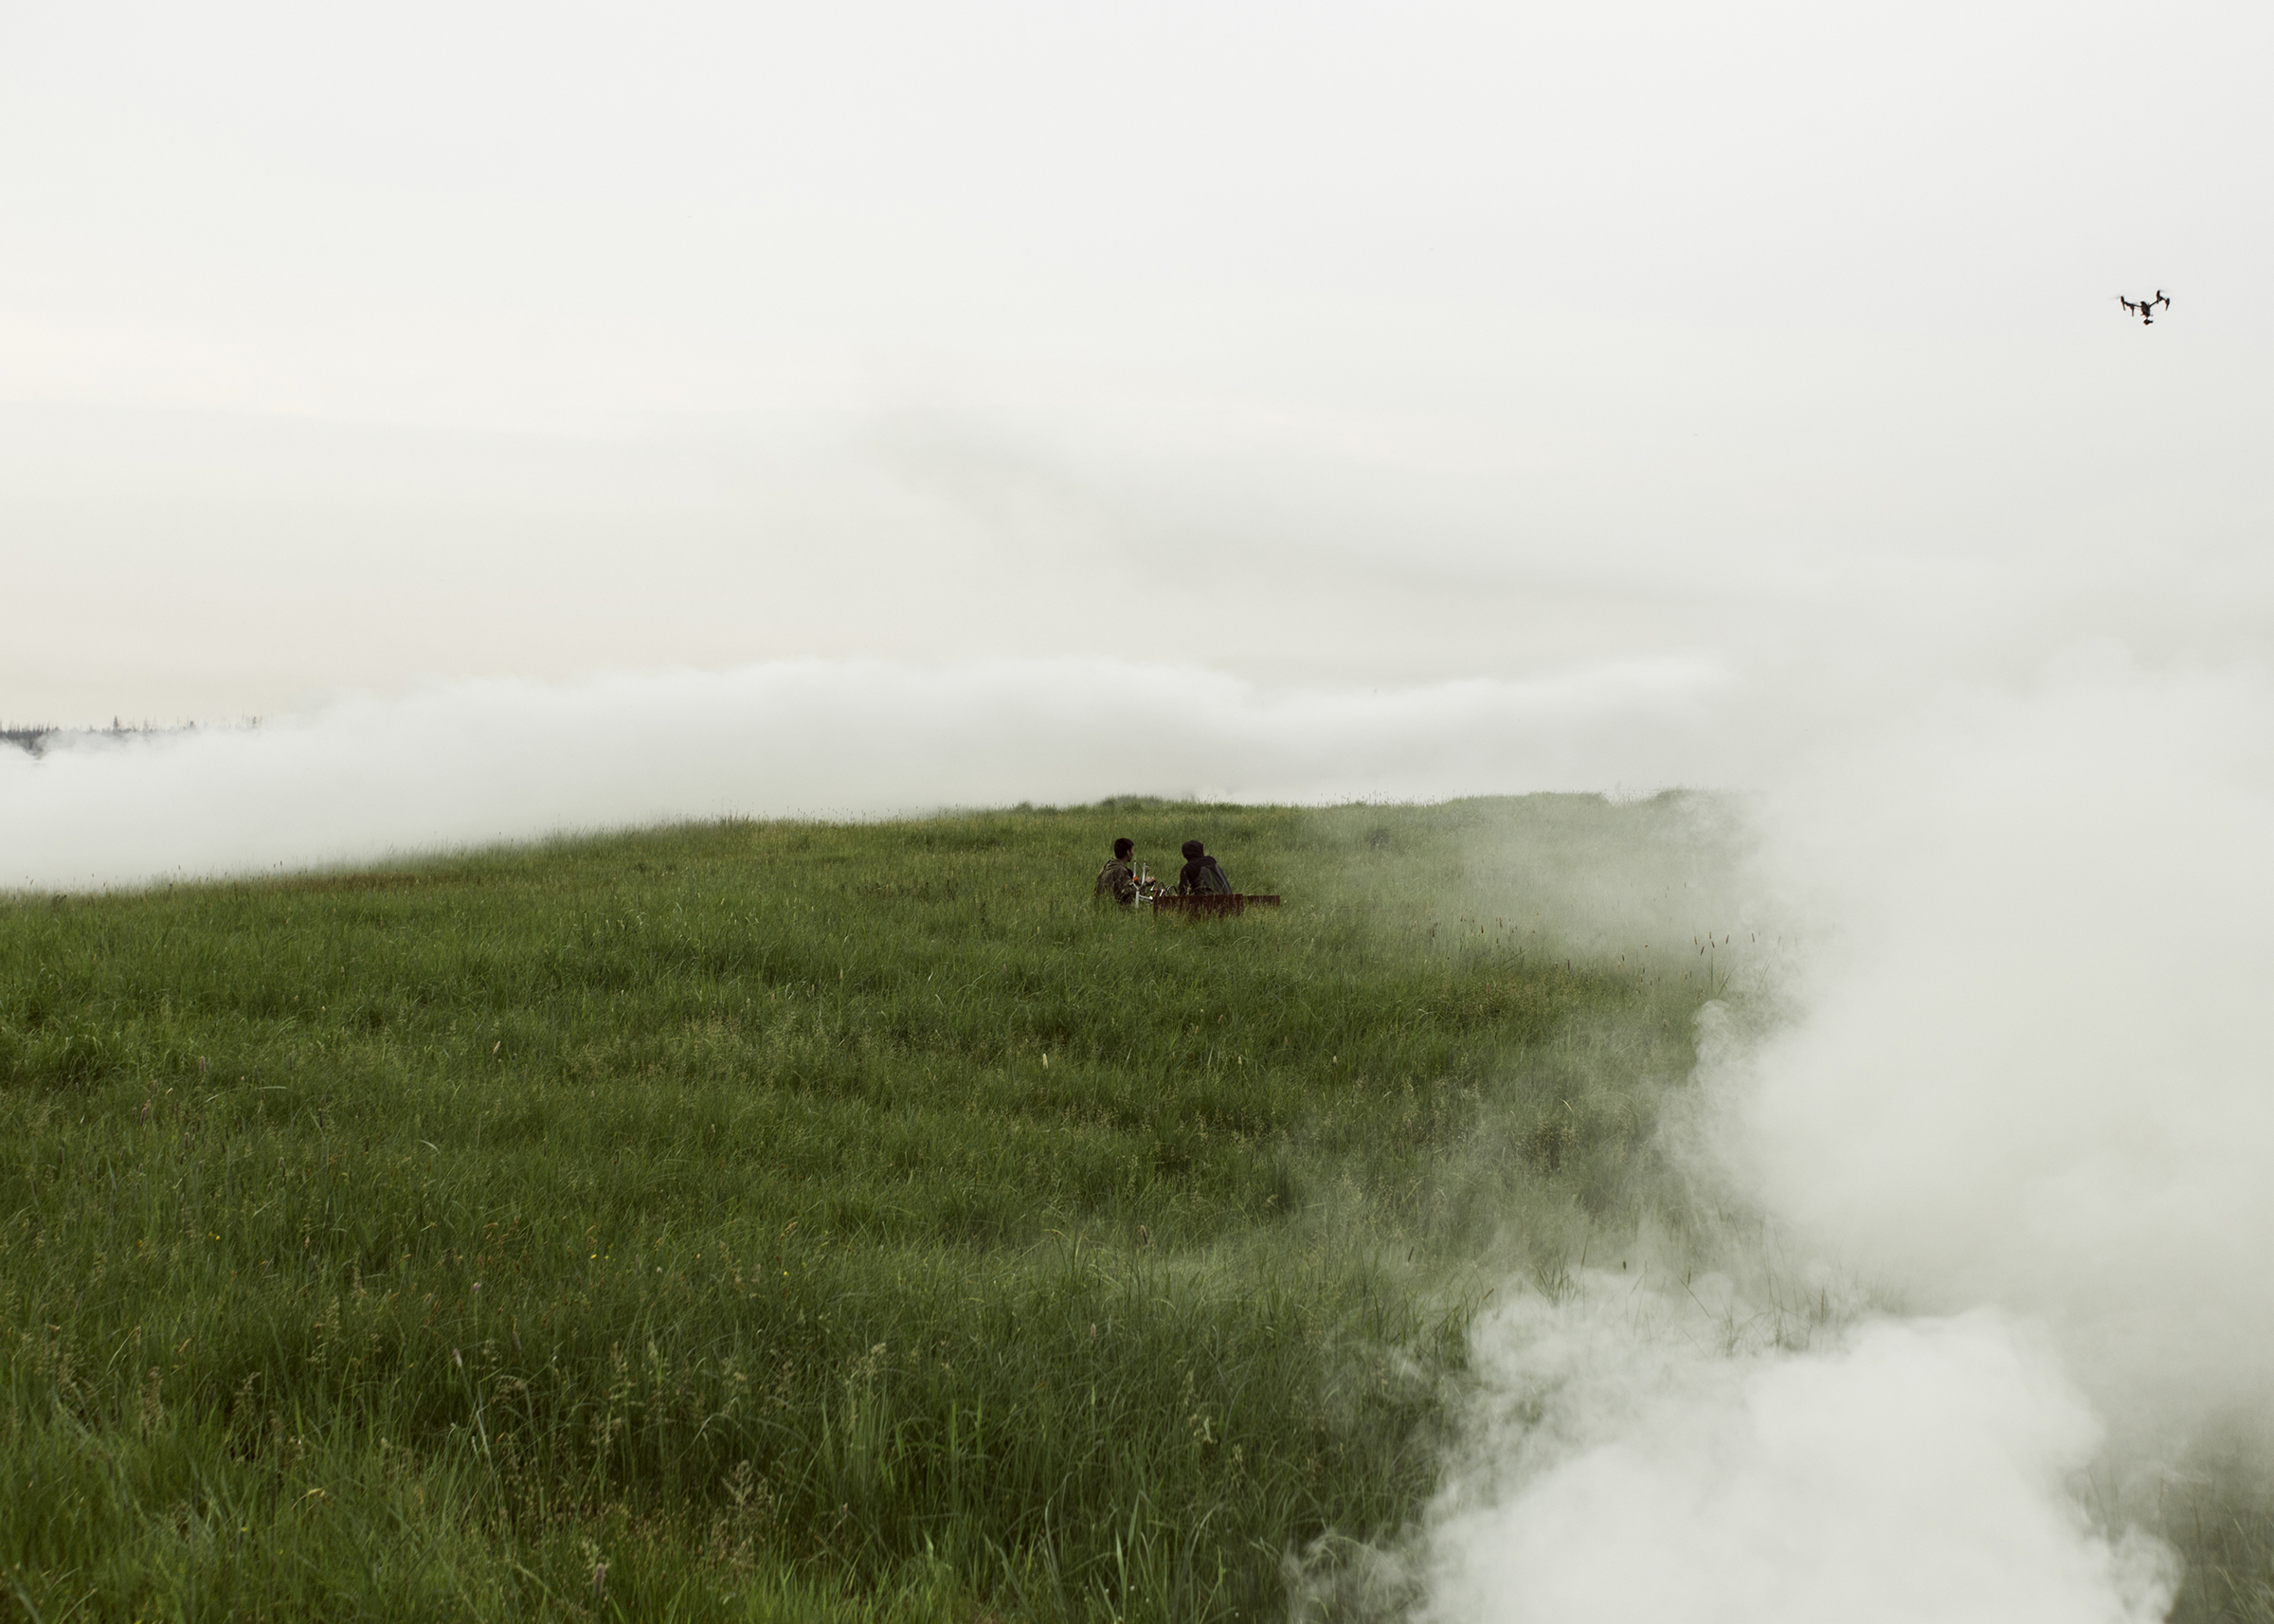 On the set of the horror film 'The Cursed Land', directed by Stepan Burnashev. Military smoke bombs were used to create a foggy atmosphere.